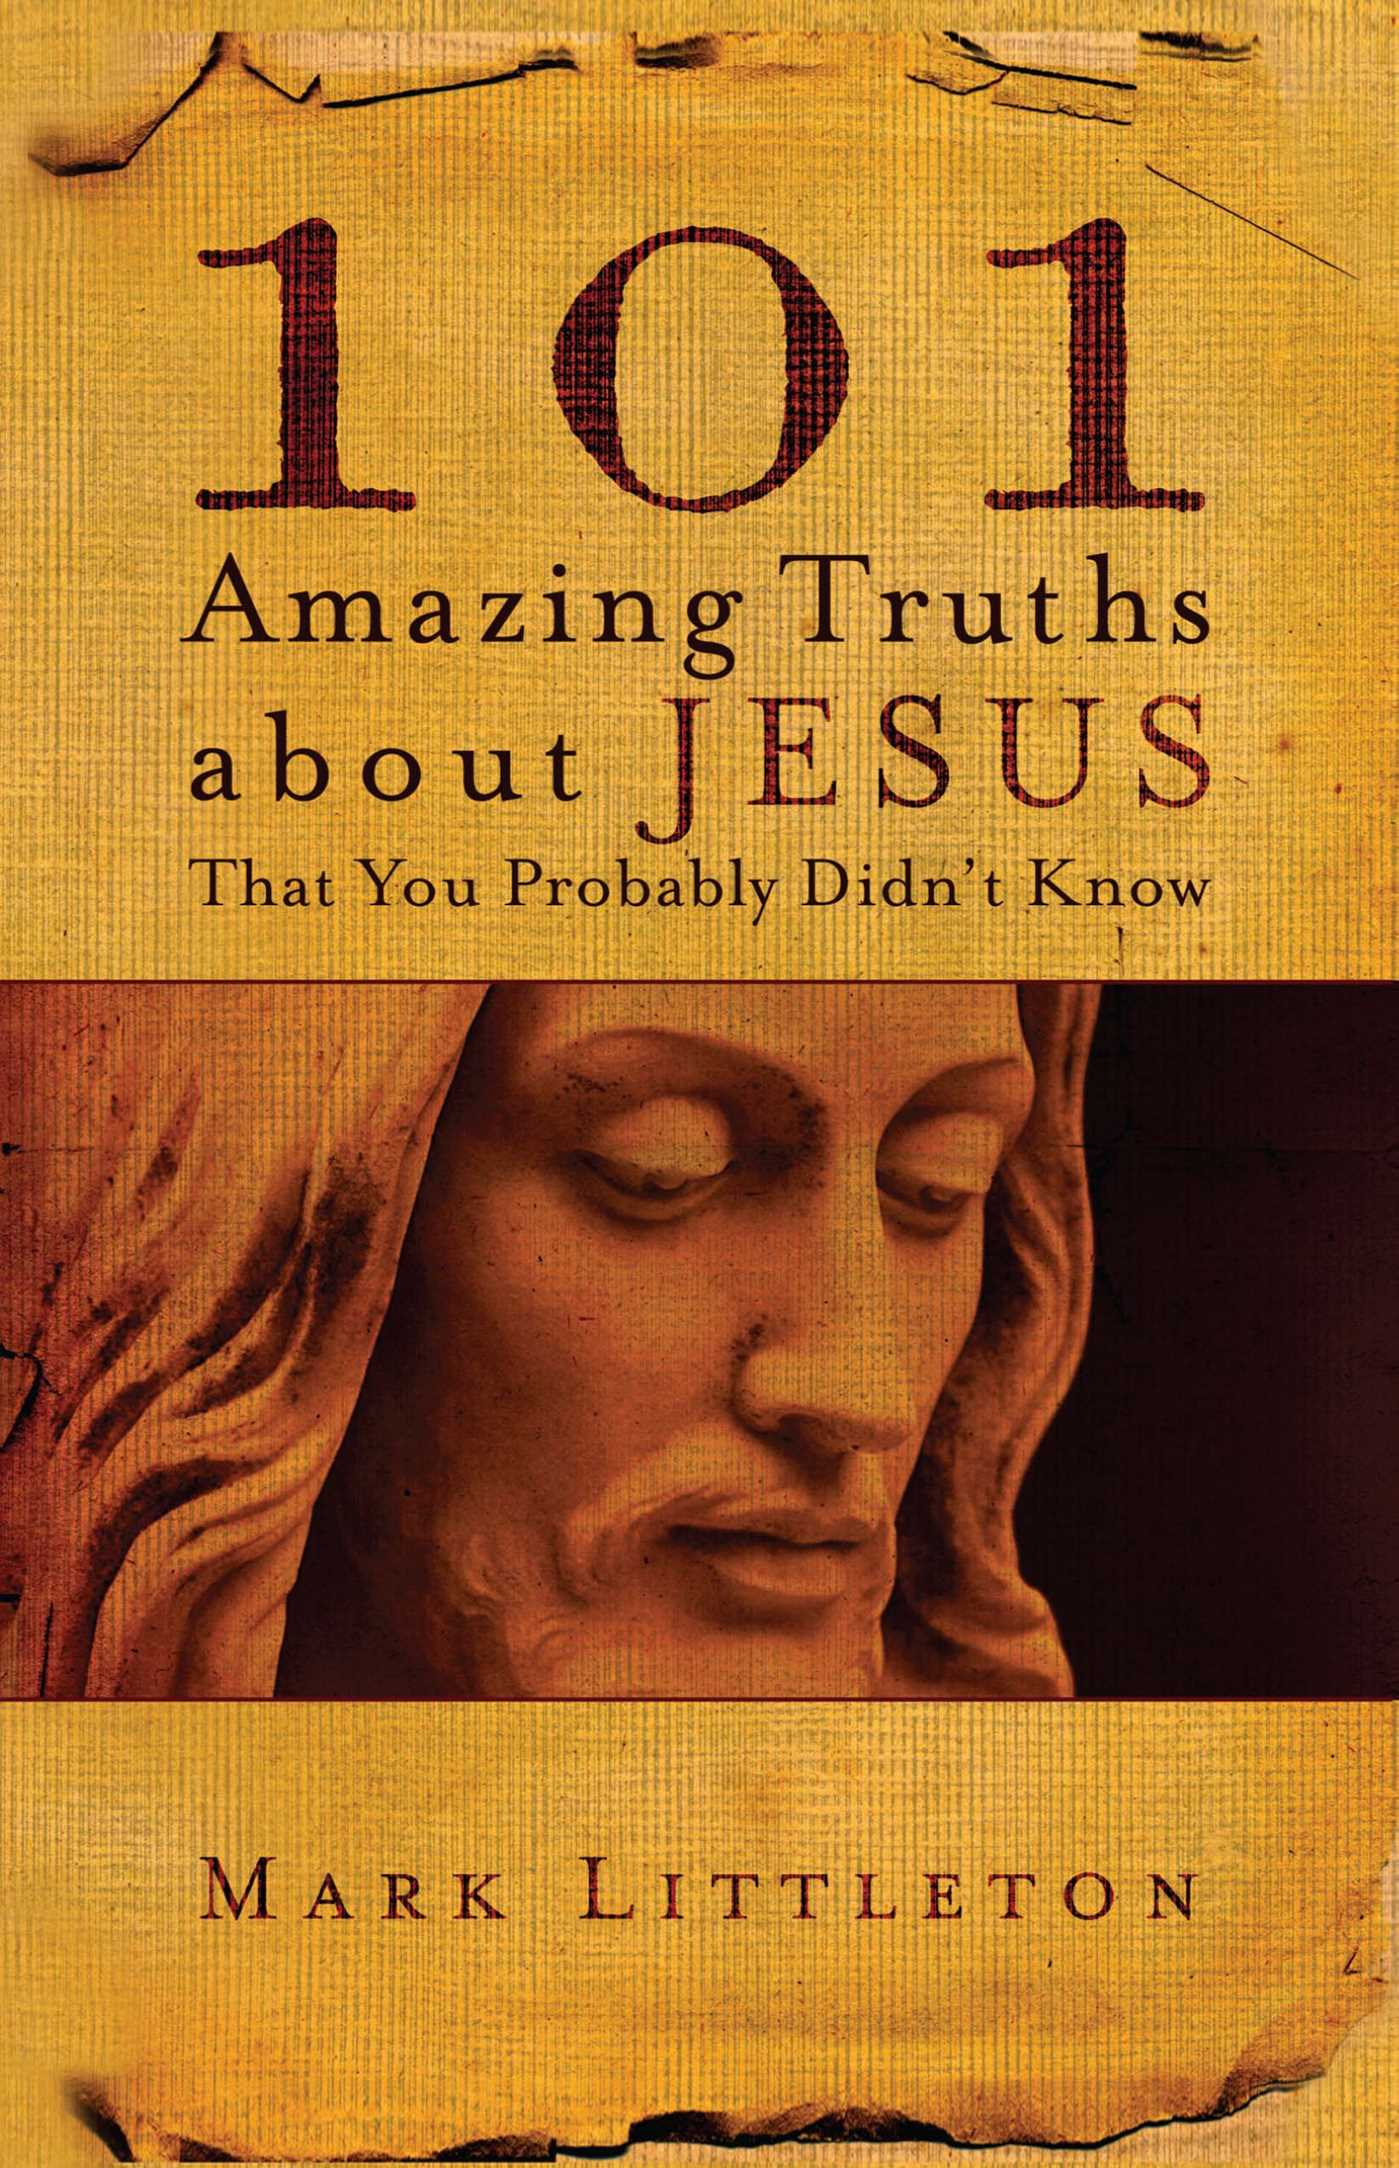 101-amazing-truths-about-jesus-that-you-probably-didnt-know-9781582296357_hr